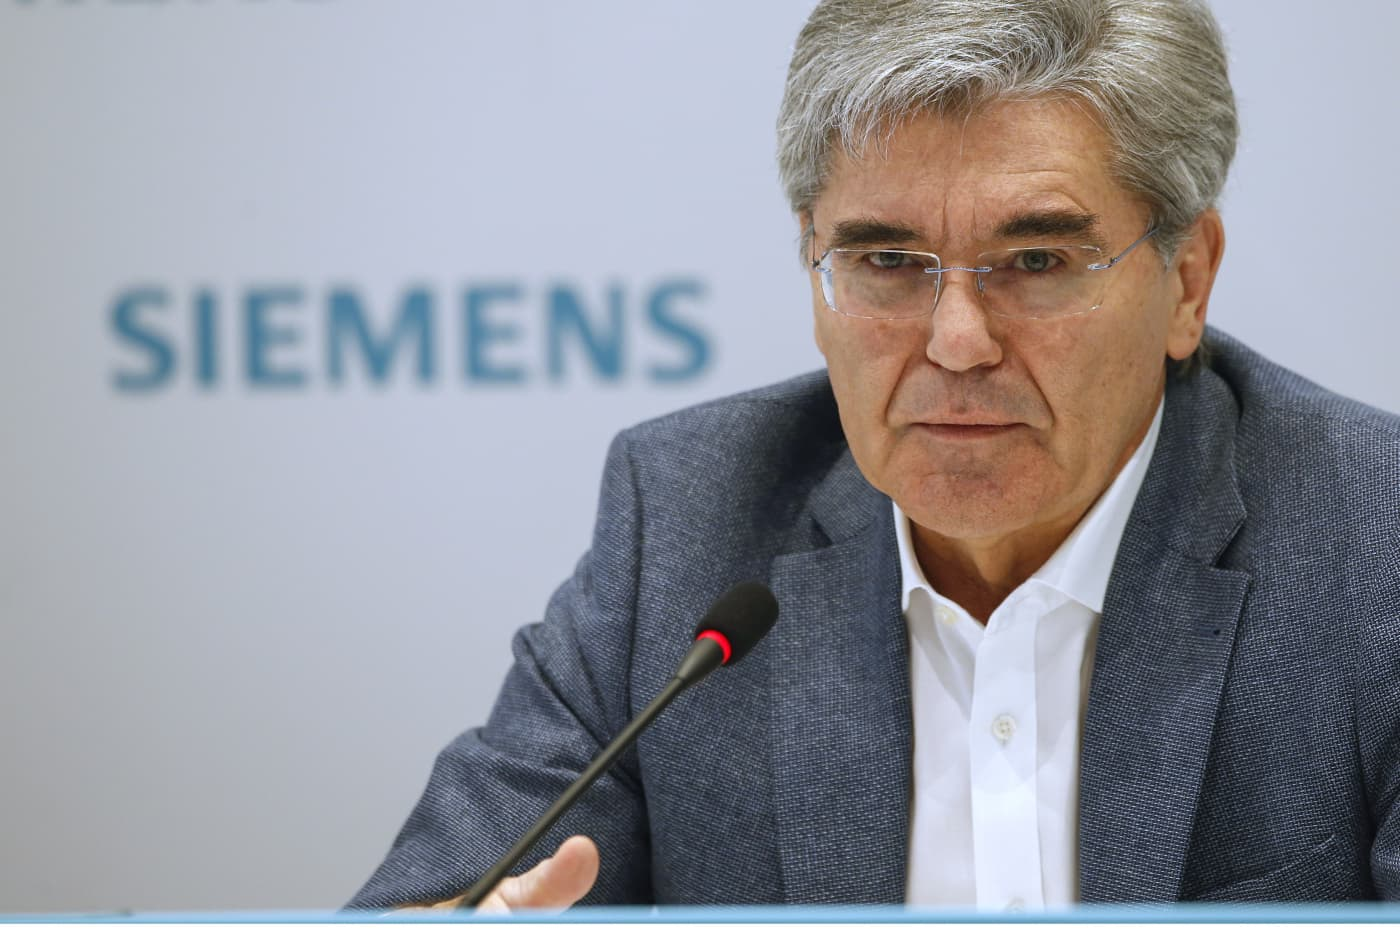 Siemens boss says Trump would back his company in Middle East reconstruction projects